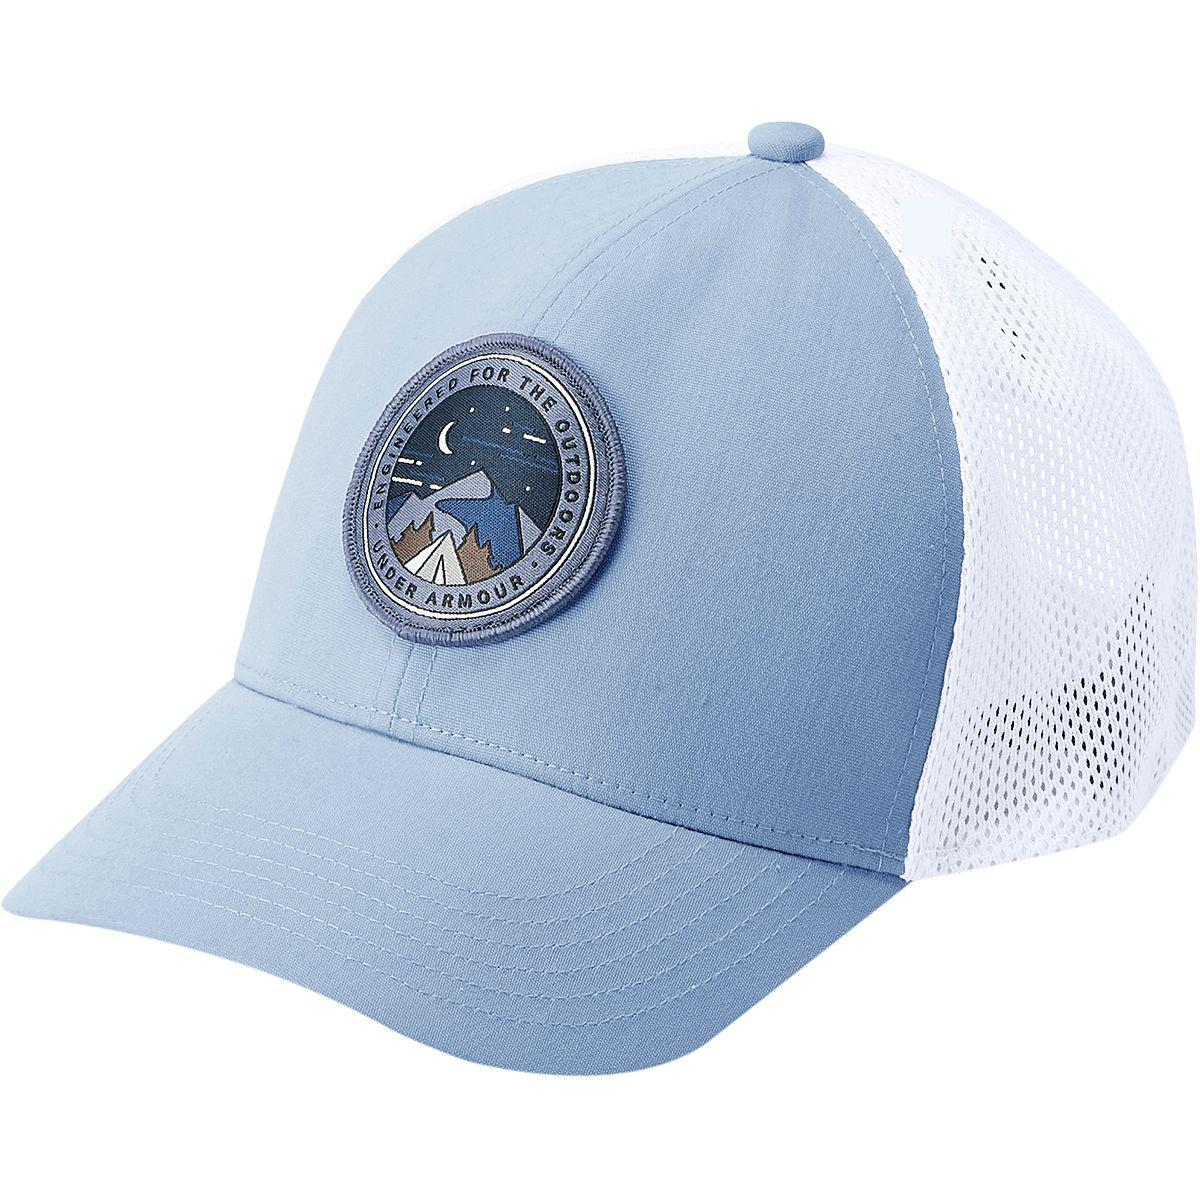 4143fcfac72 ... canada lace up in 6f576 902e0 lyst under armour outdoor performance  patch snapback hat i 13c2f